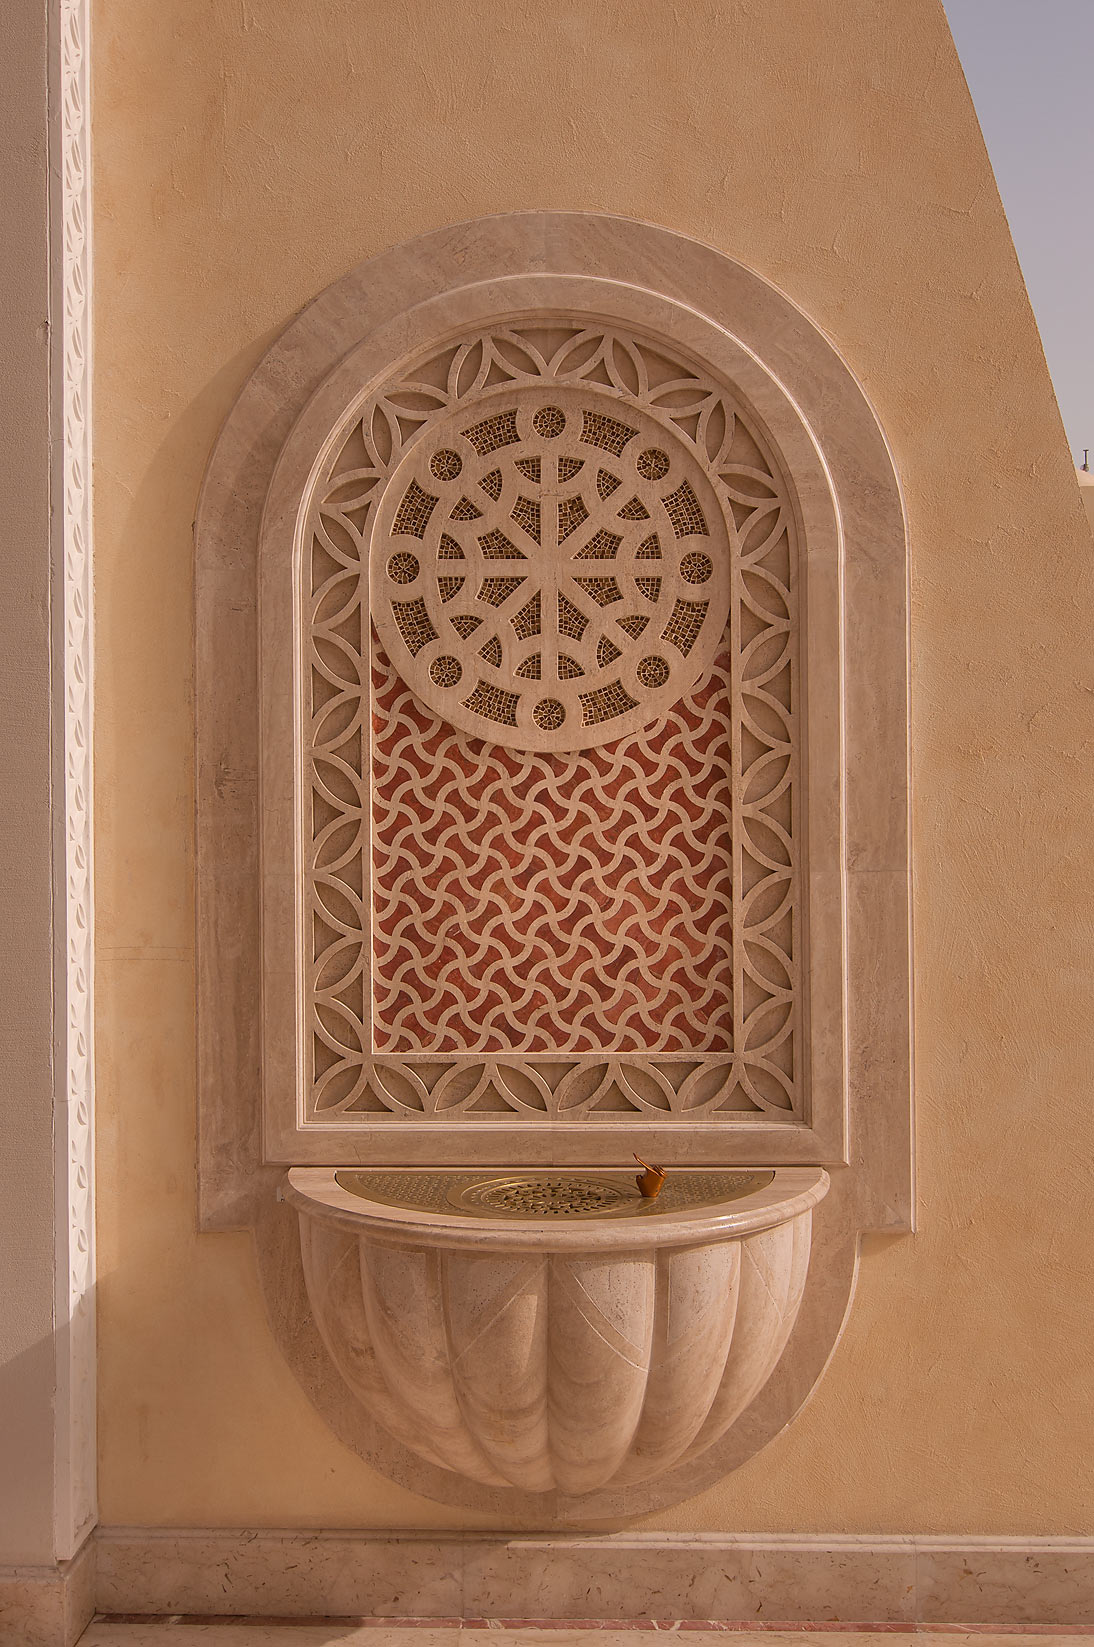 Drinking fountain in courtyard of State Mosque...Ibn Abdul Wahhab Mosque). Doha, Qatar